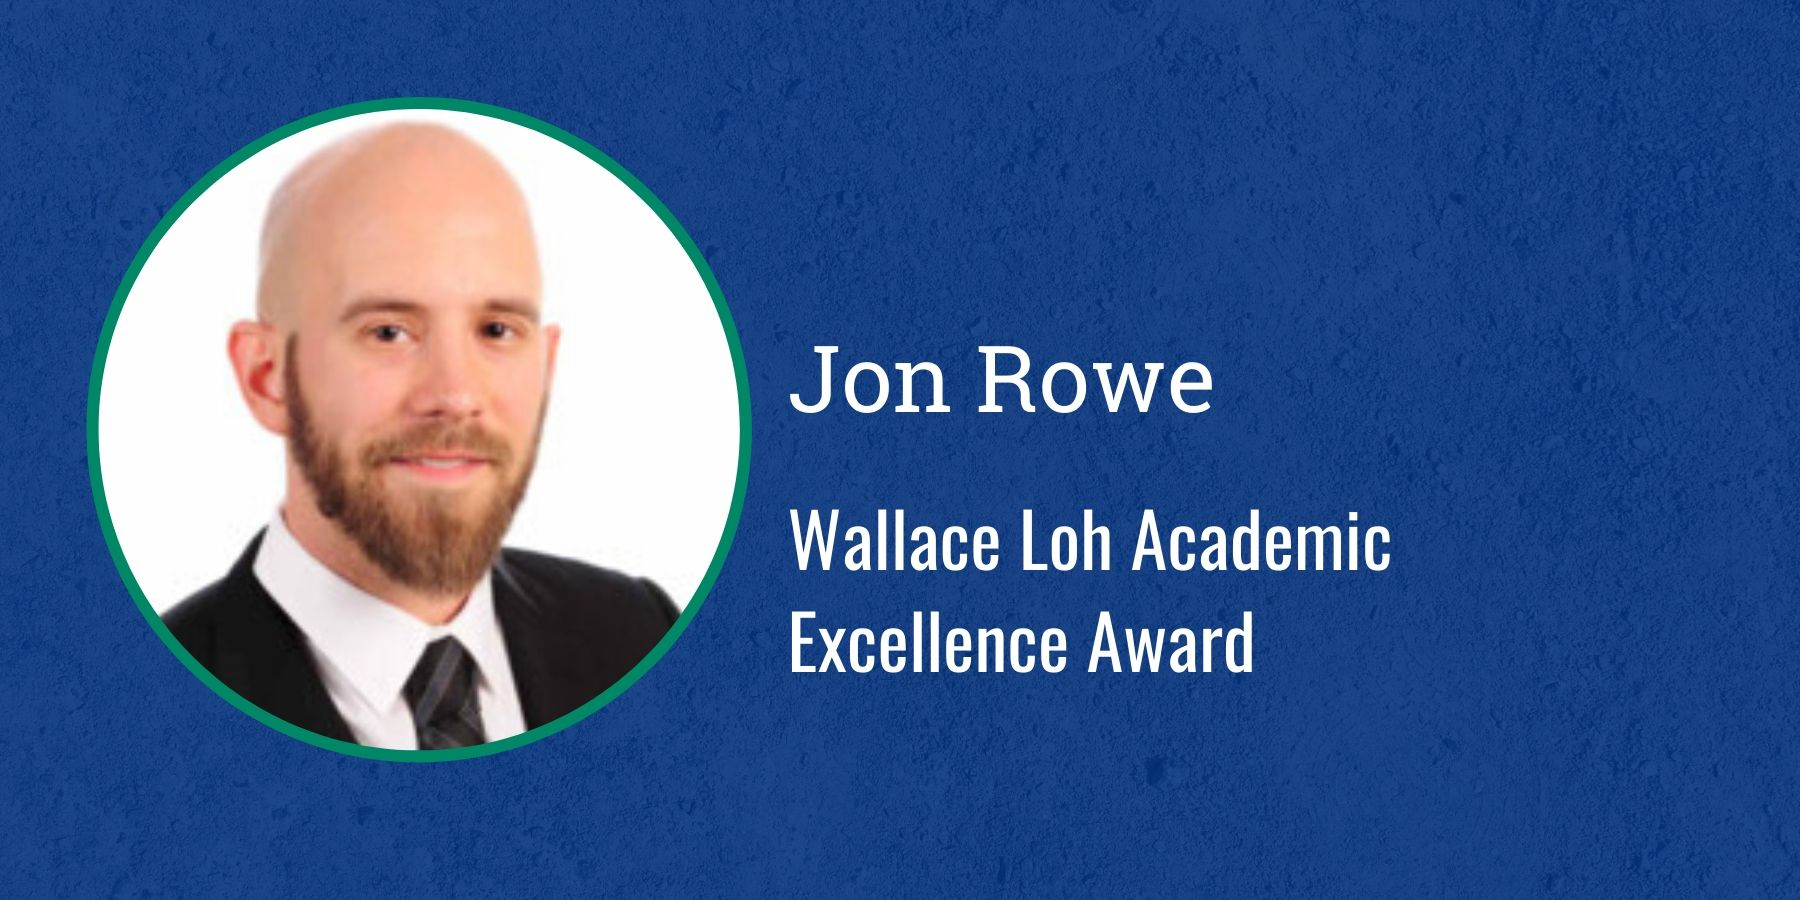 Picture of Jon Rowe and text Wallace Loh Academic Excellence Award